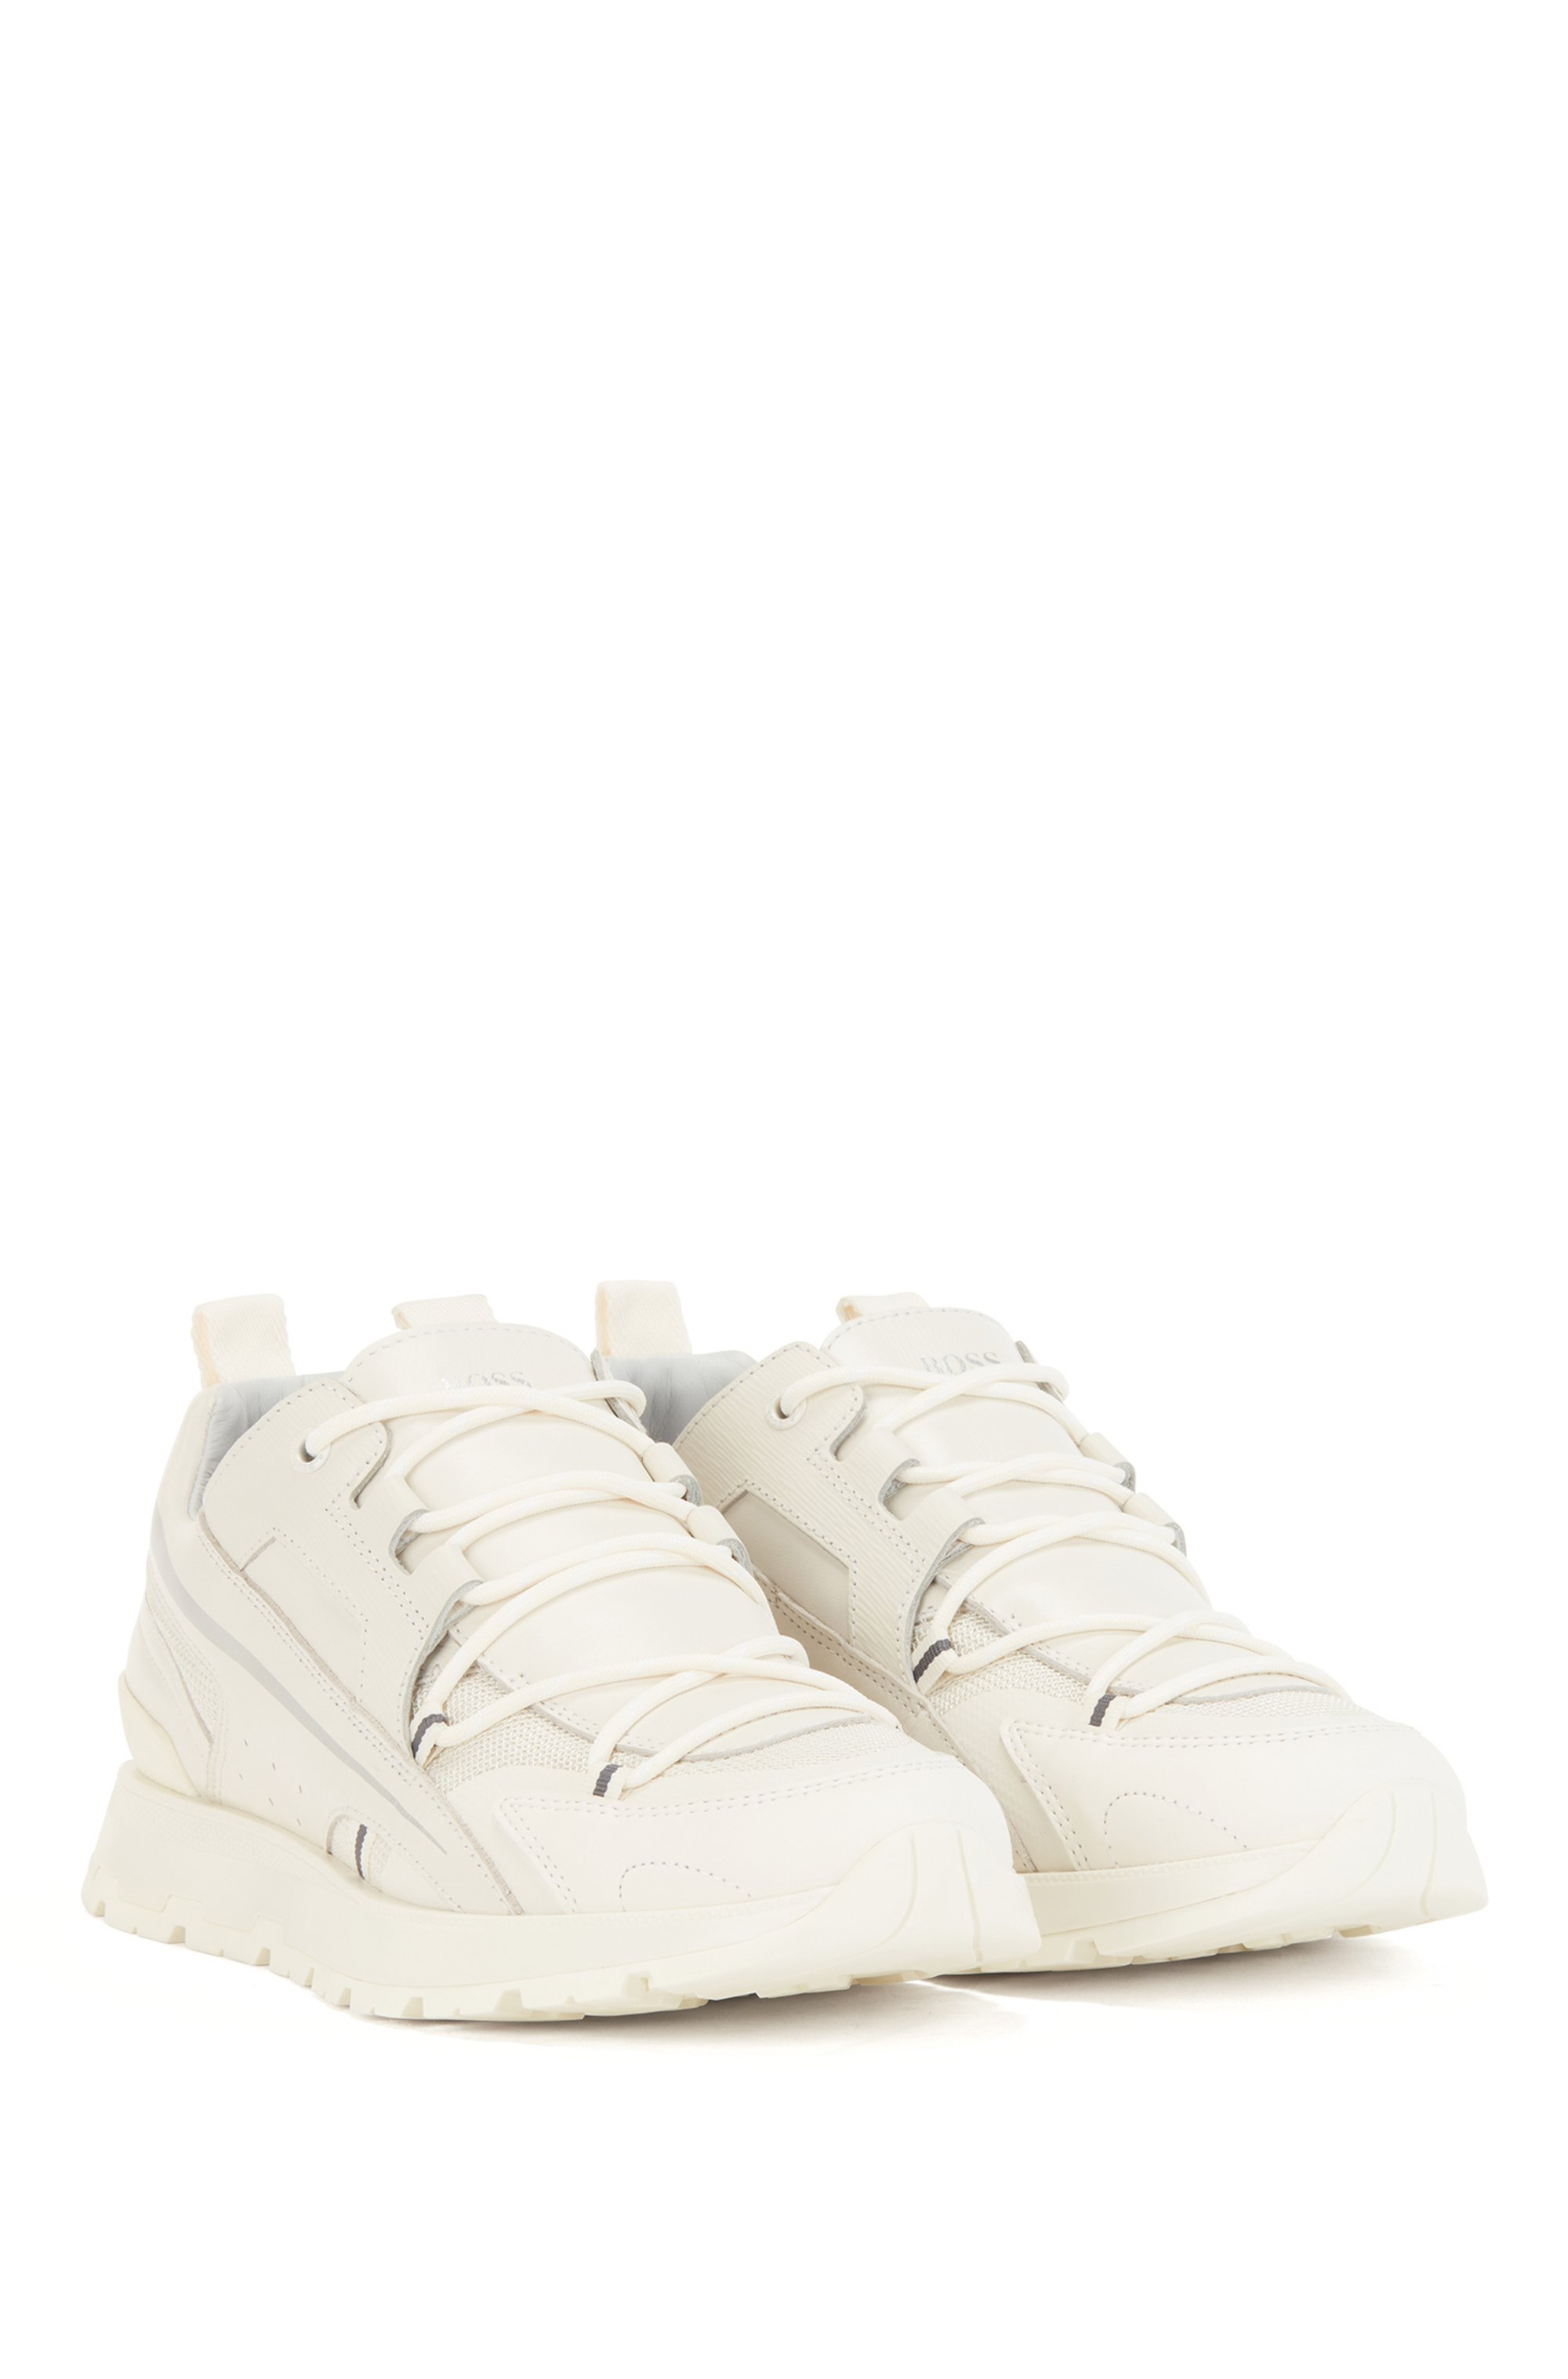 Low-top trainers in mixed materials with metallic stripe